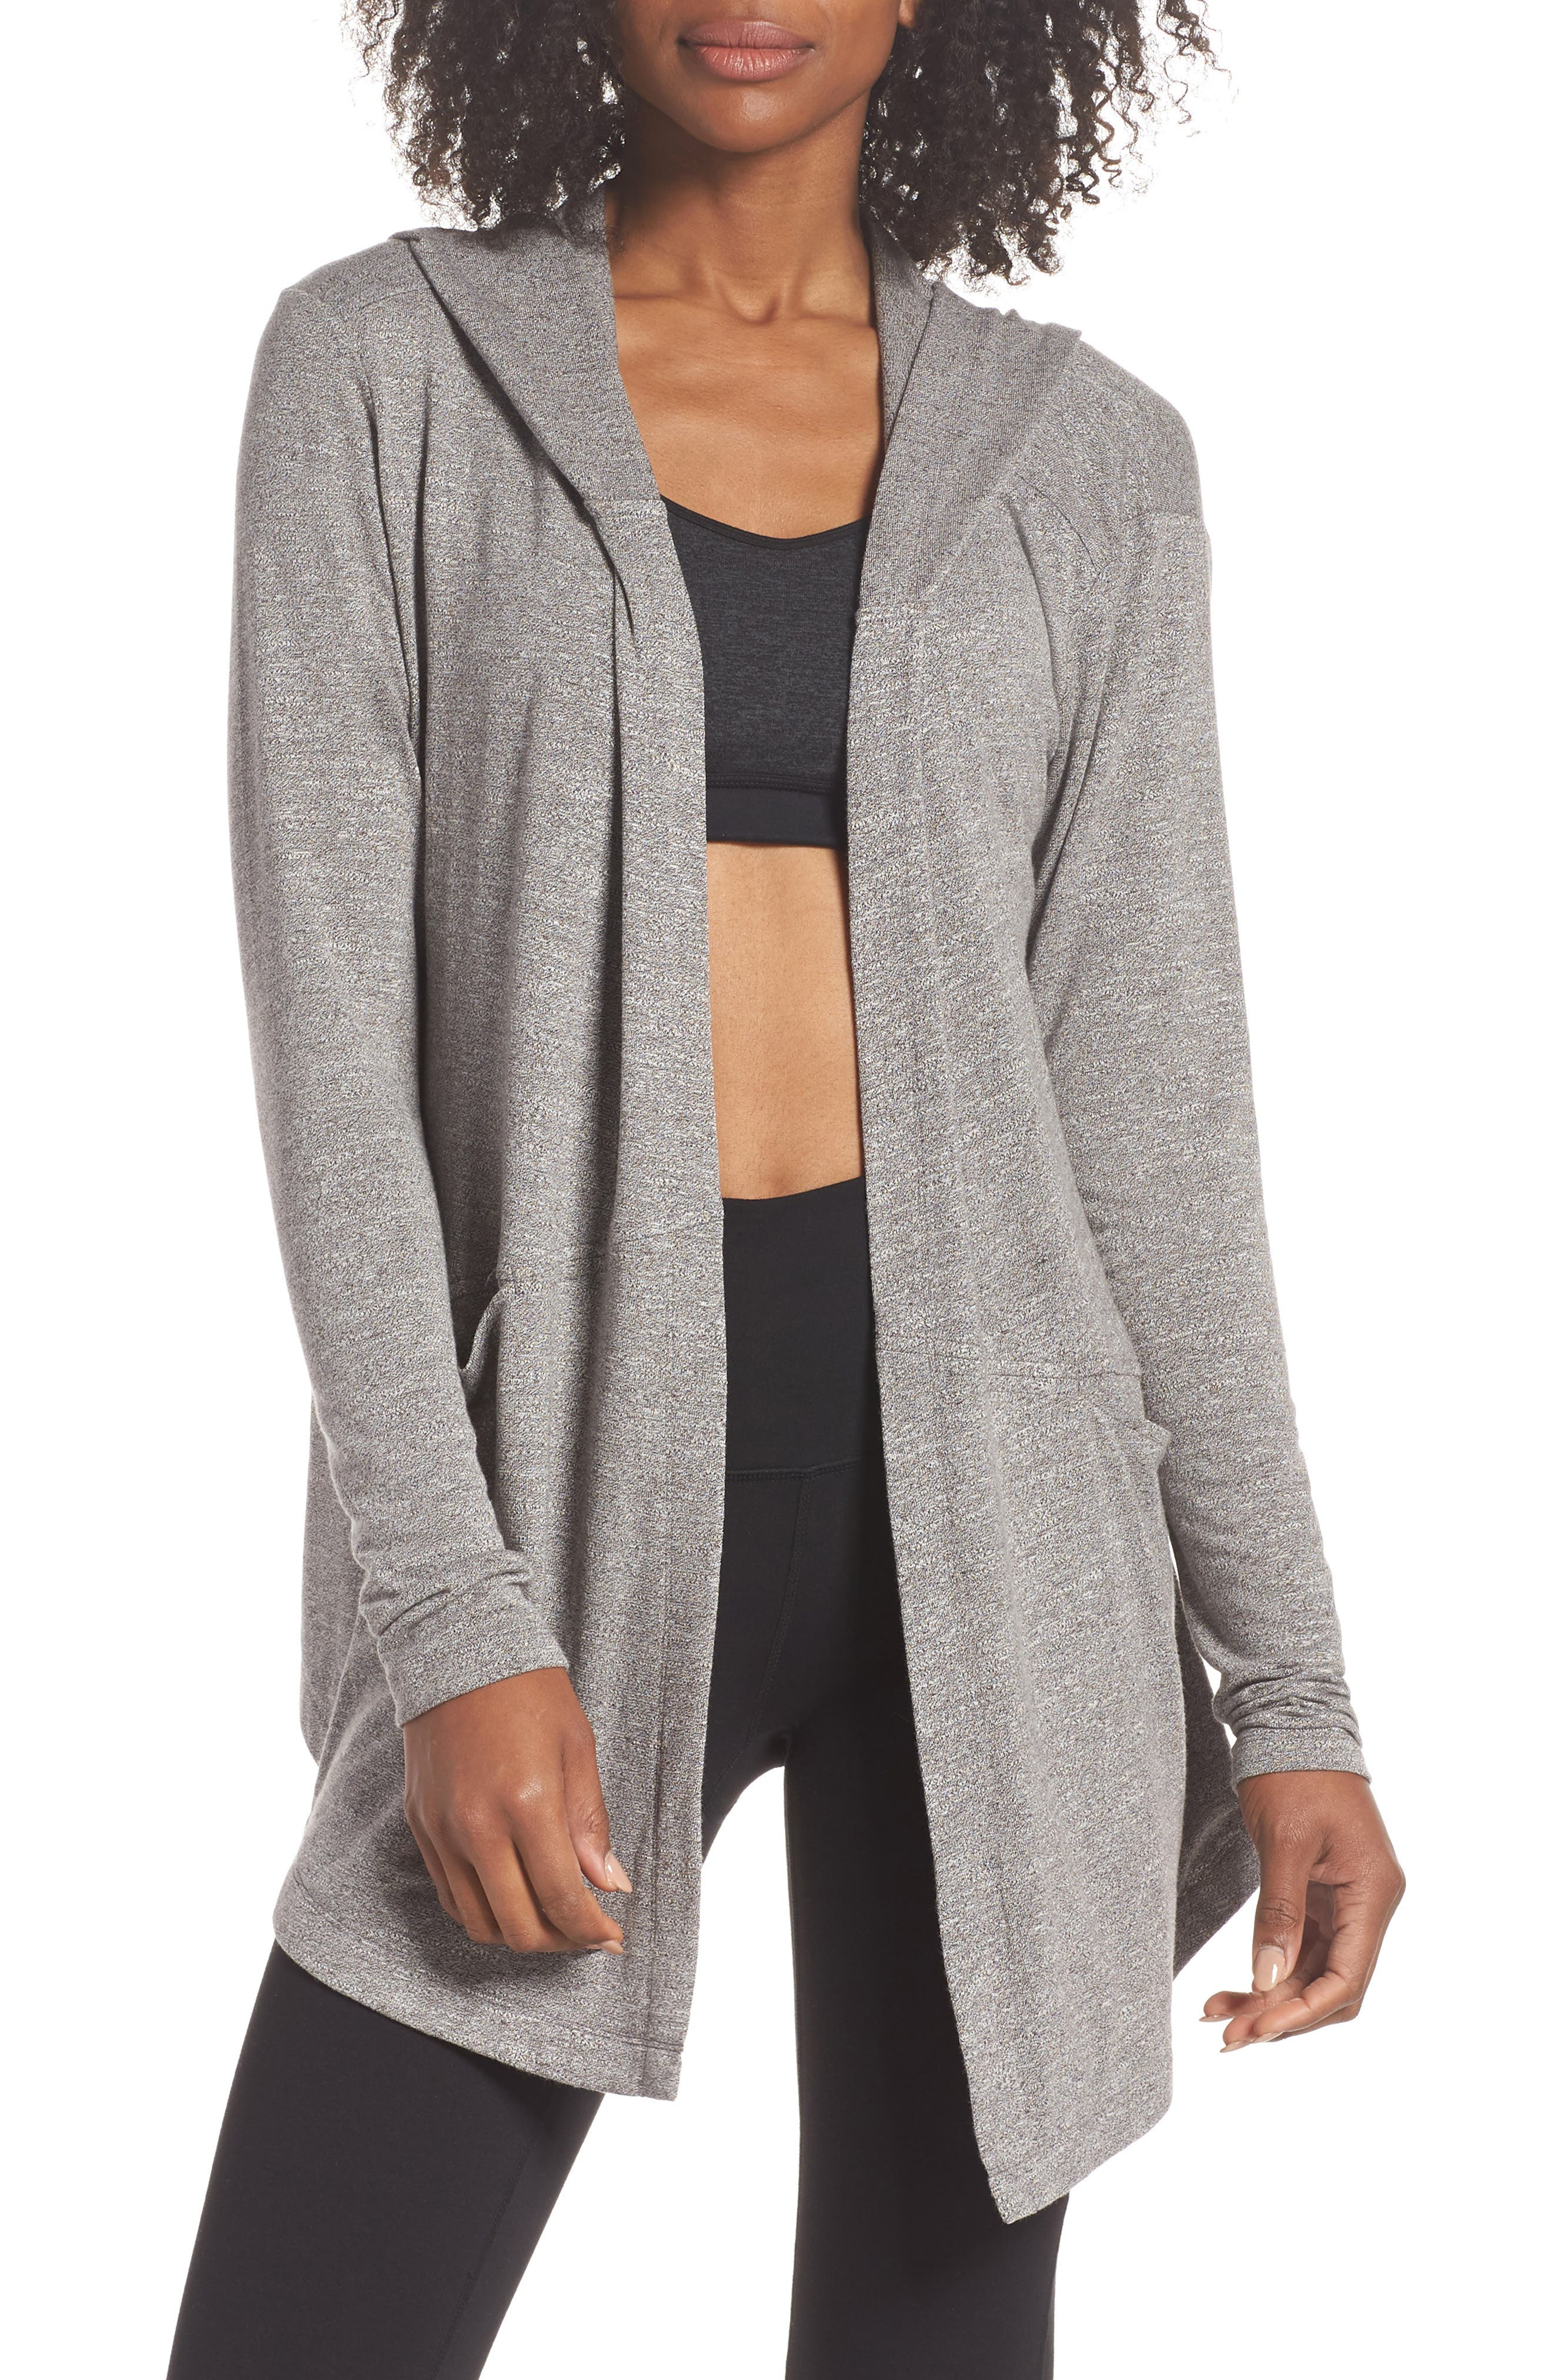 After Class Hooded Cardigan,                         Main,                         color, GREY DARK HEATHER